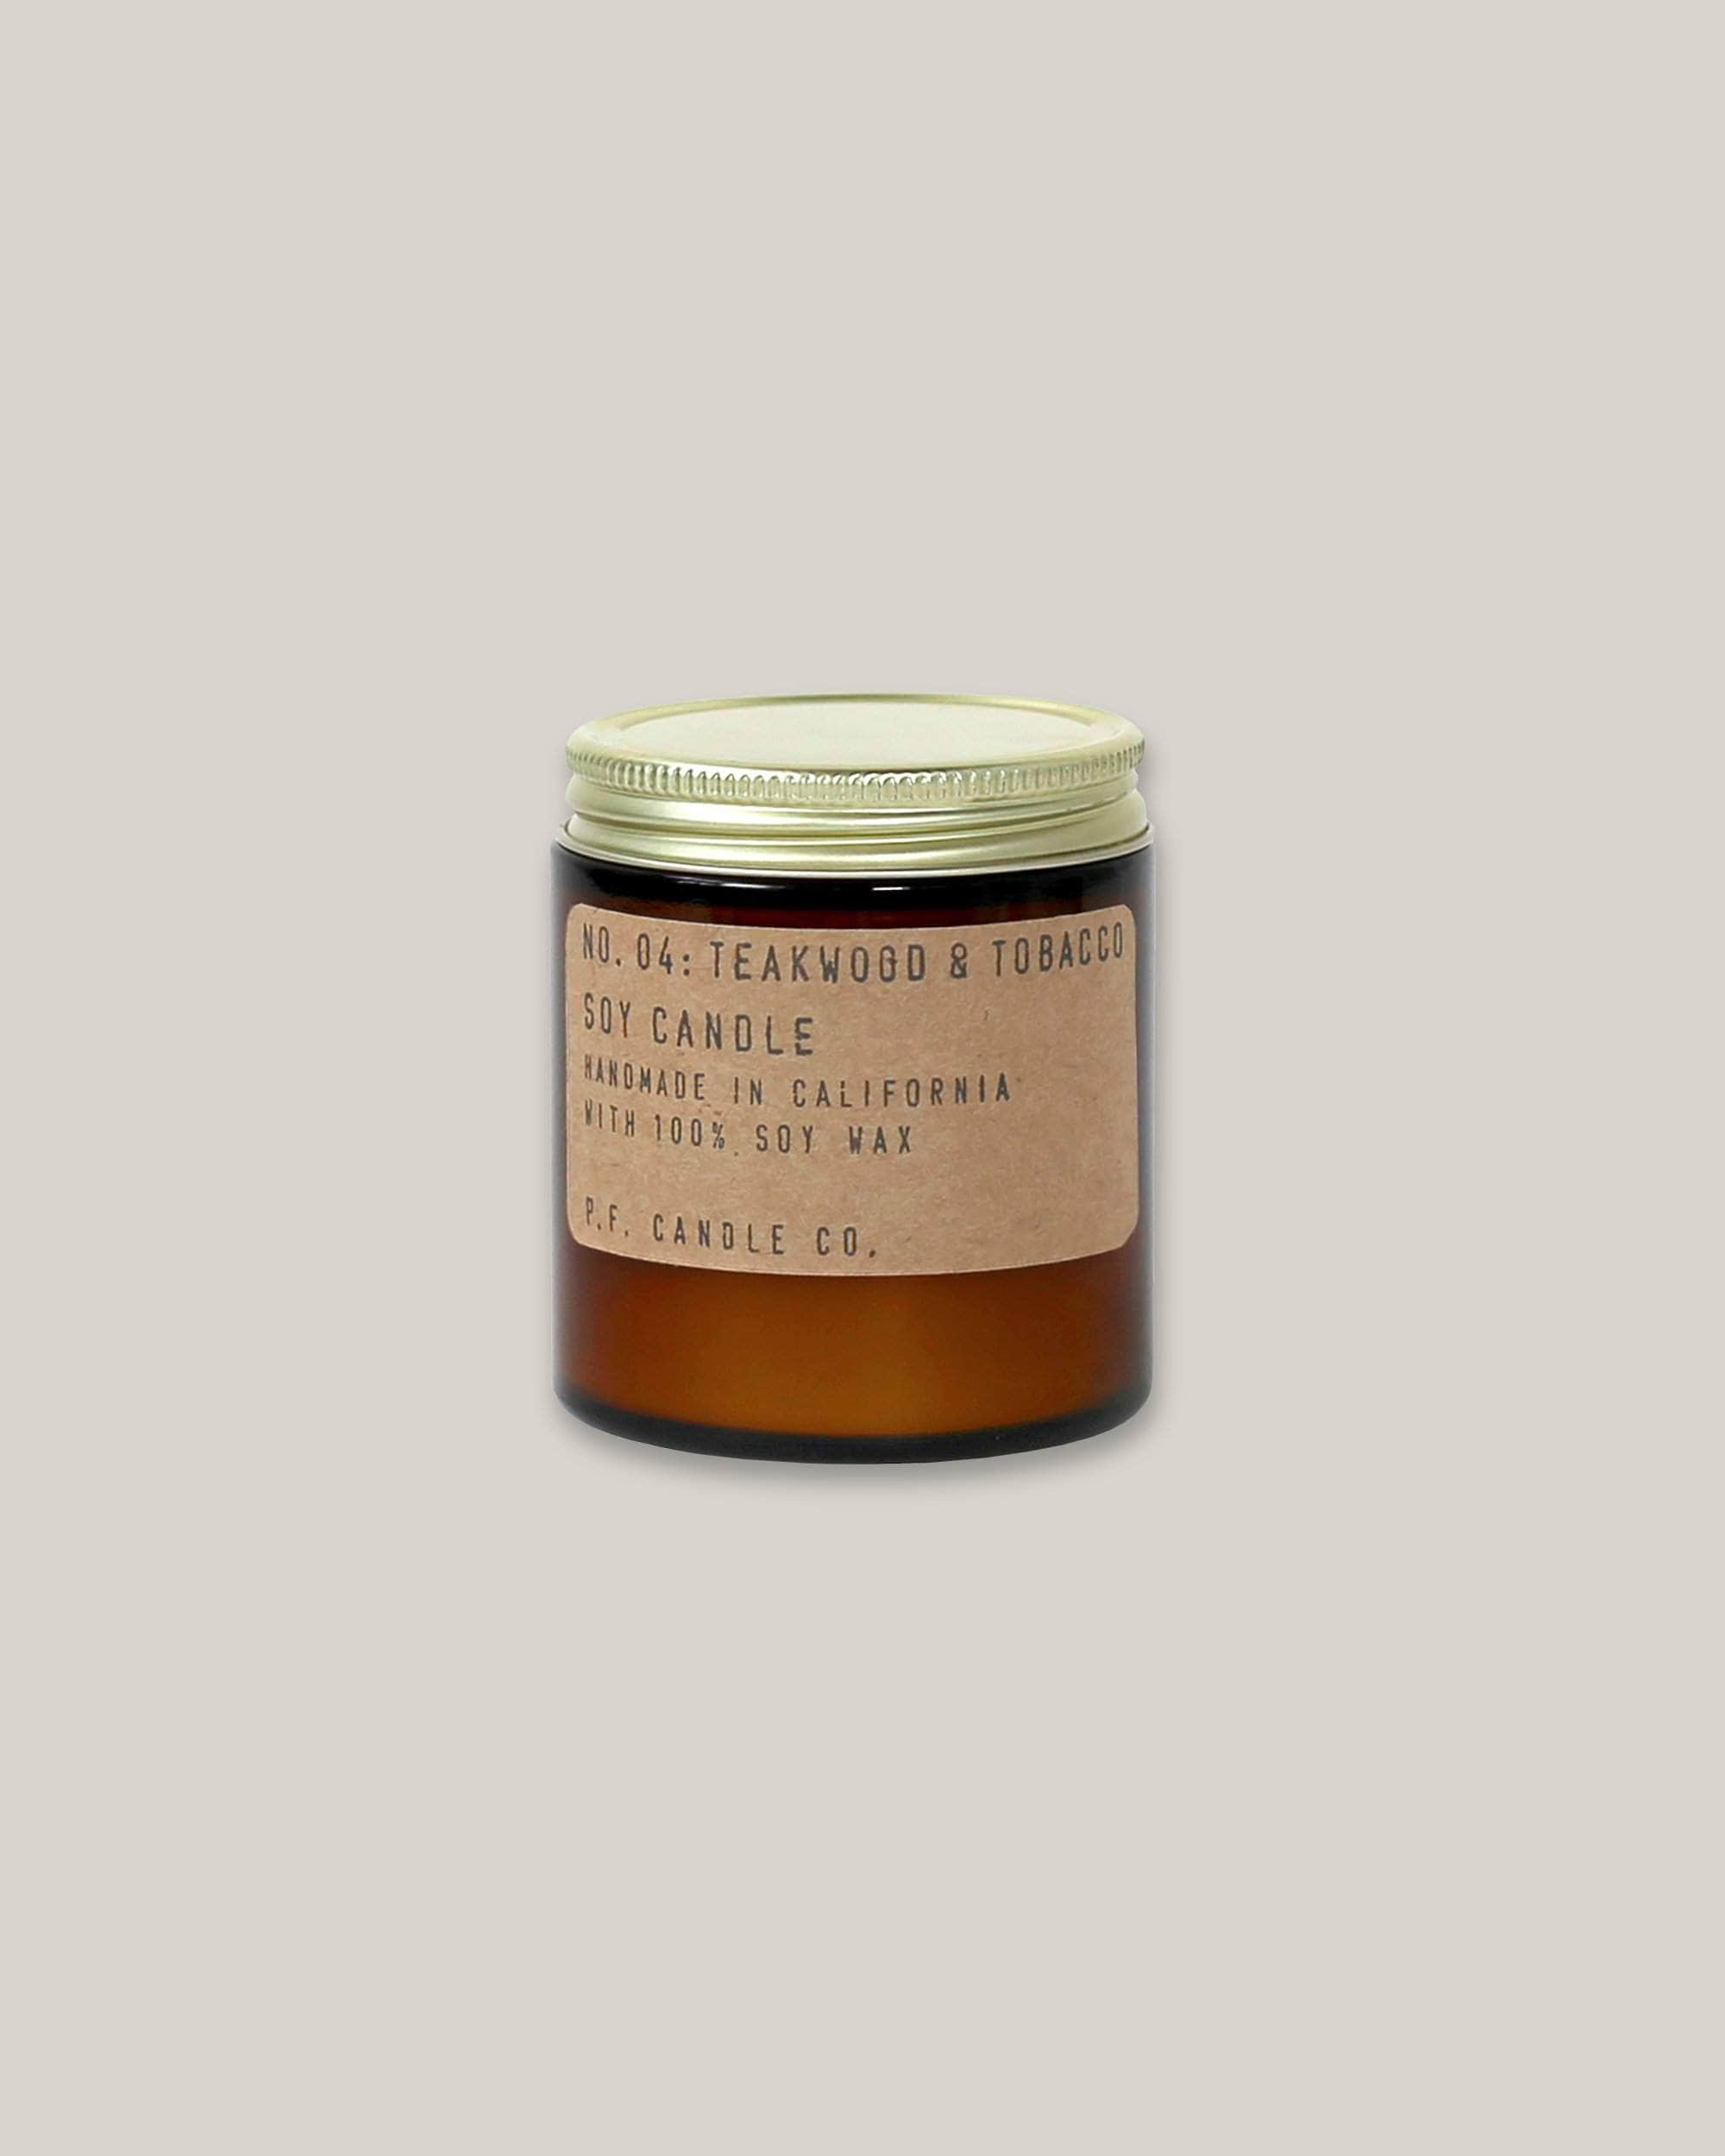 Soy Candle Teakwood & Tobacco 3.5 oz